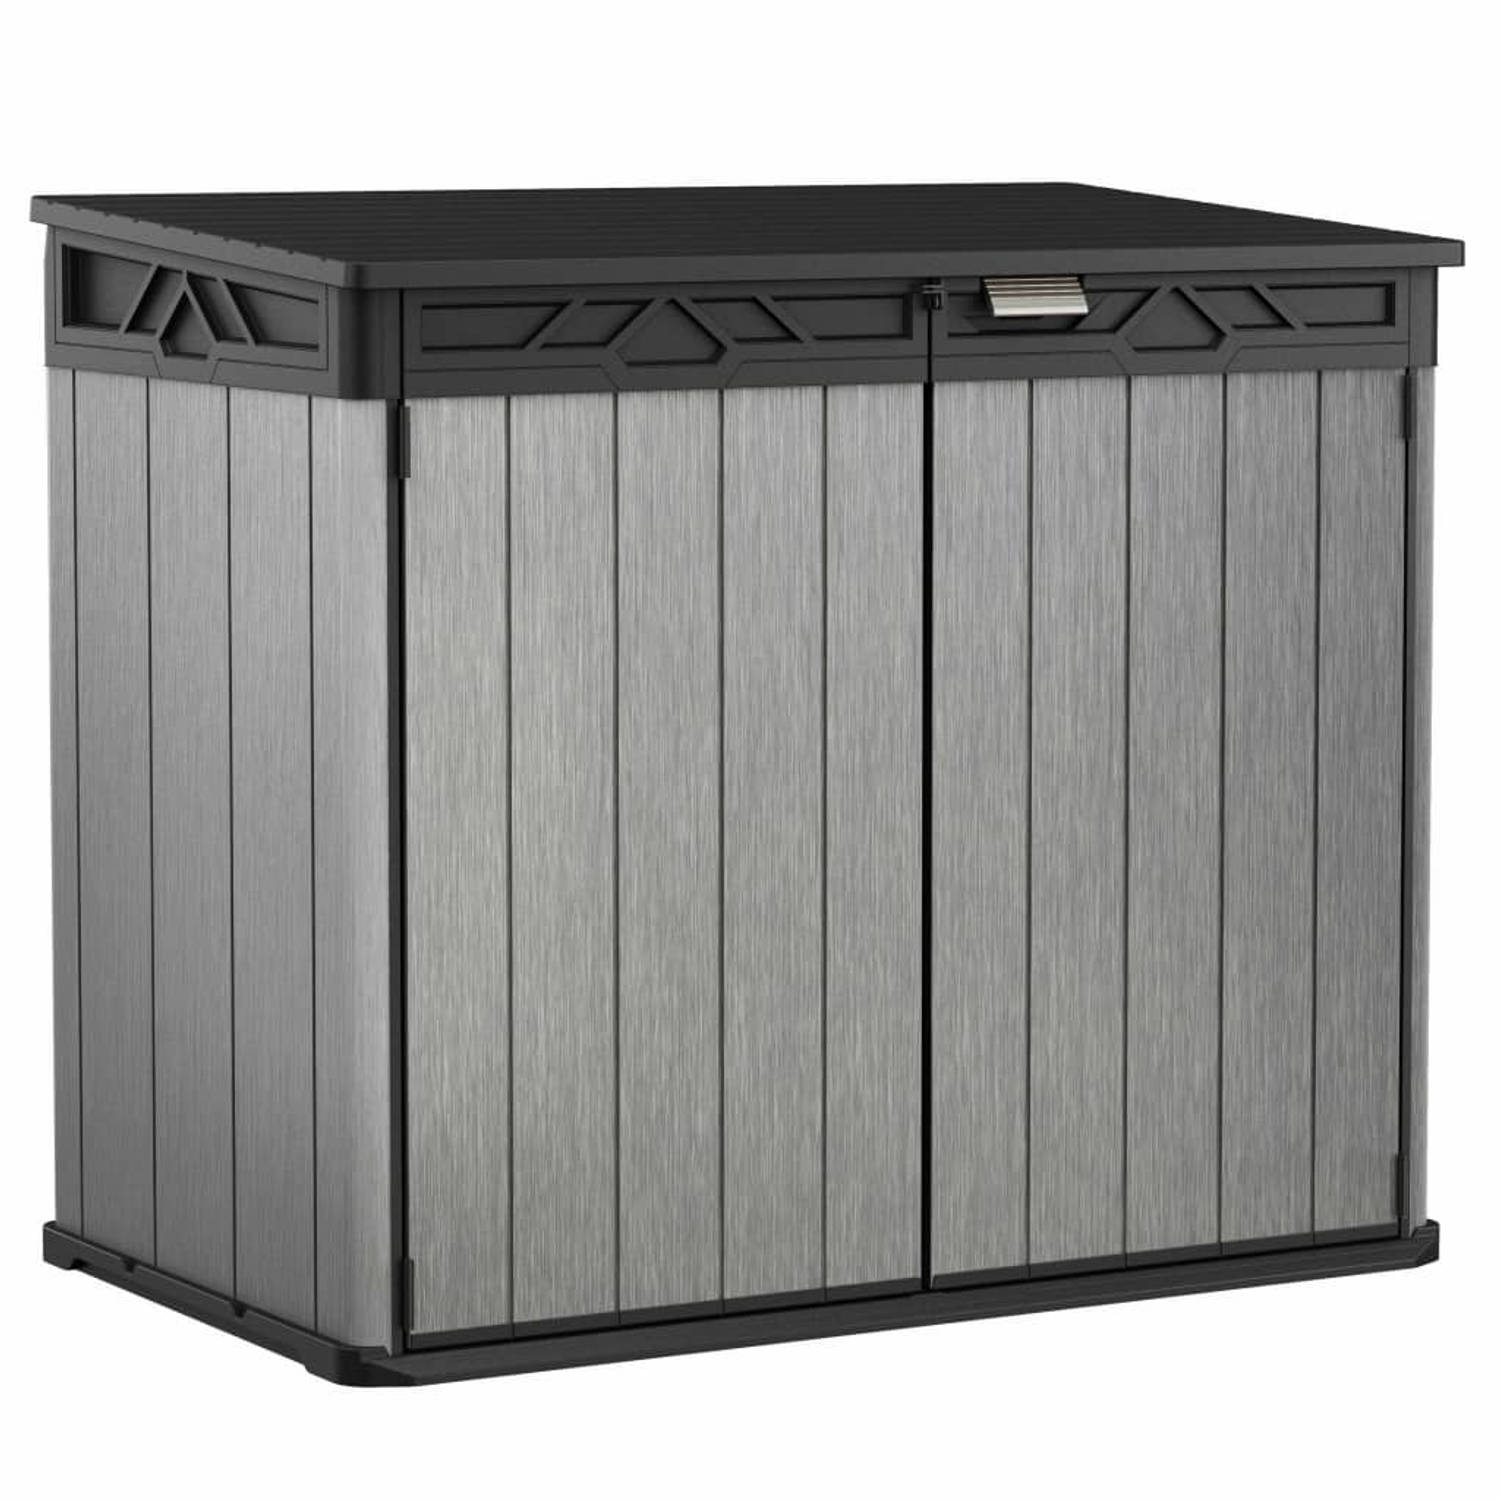 Keter Containerberging Elite Store PP grijs 237829